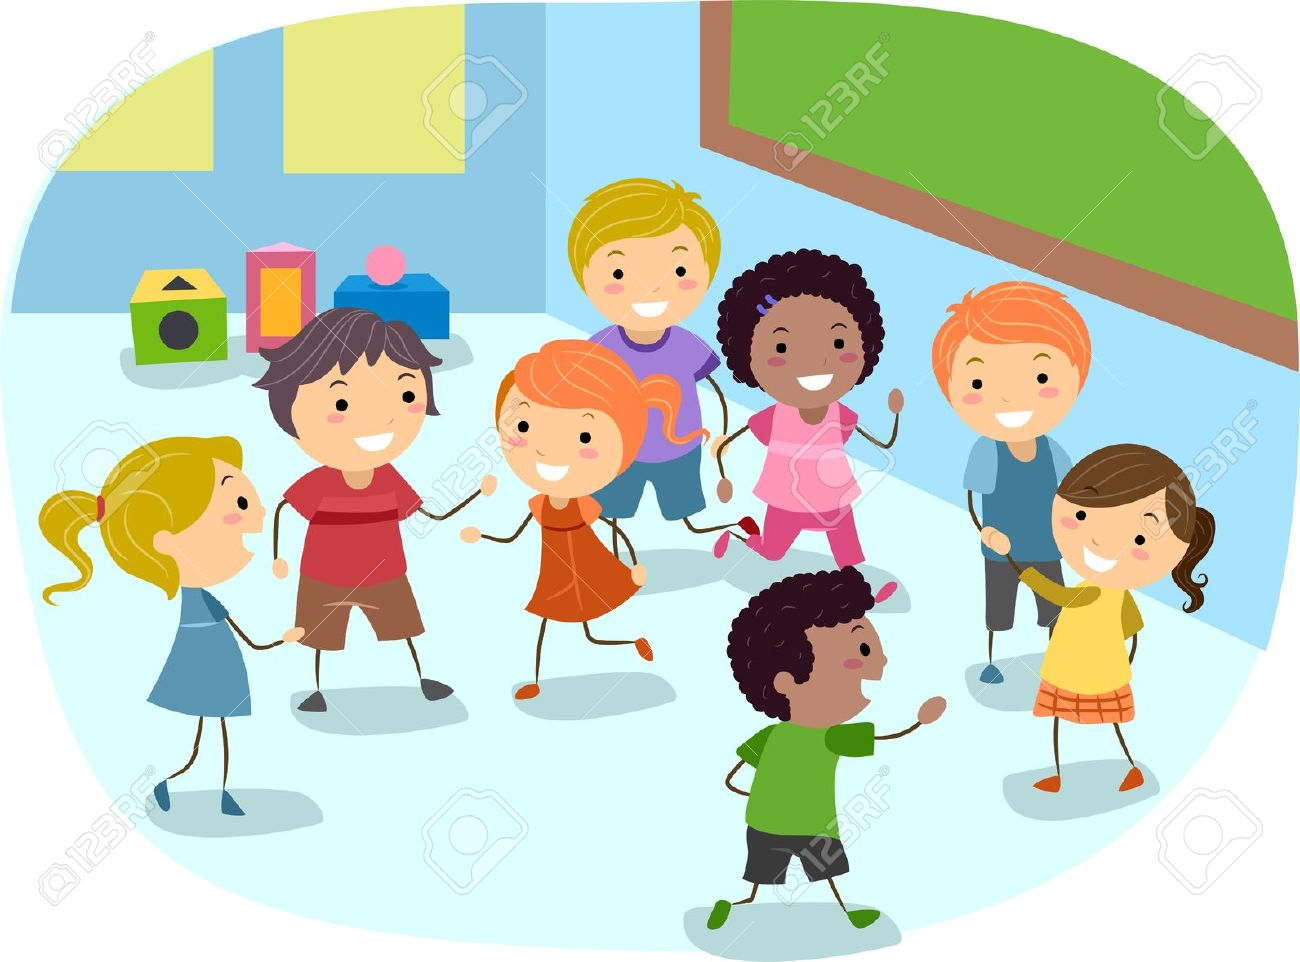 Kid In A Classroom Clipart.